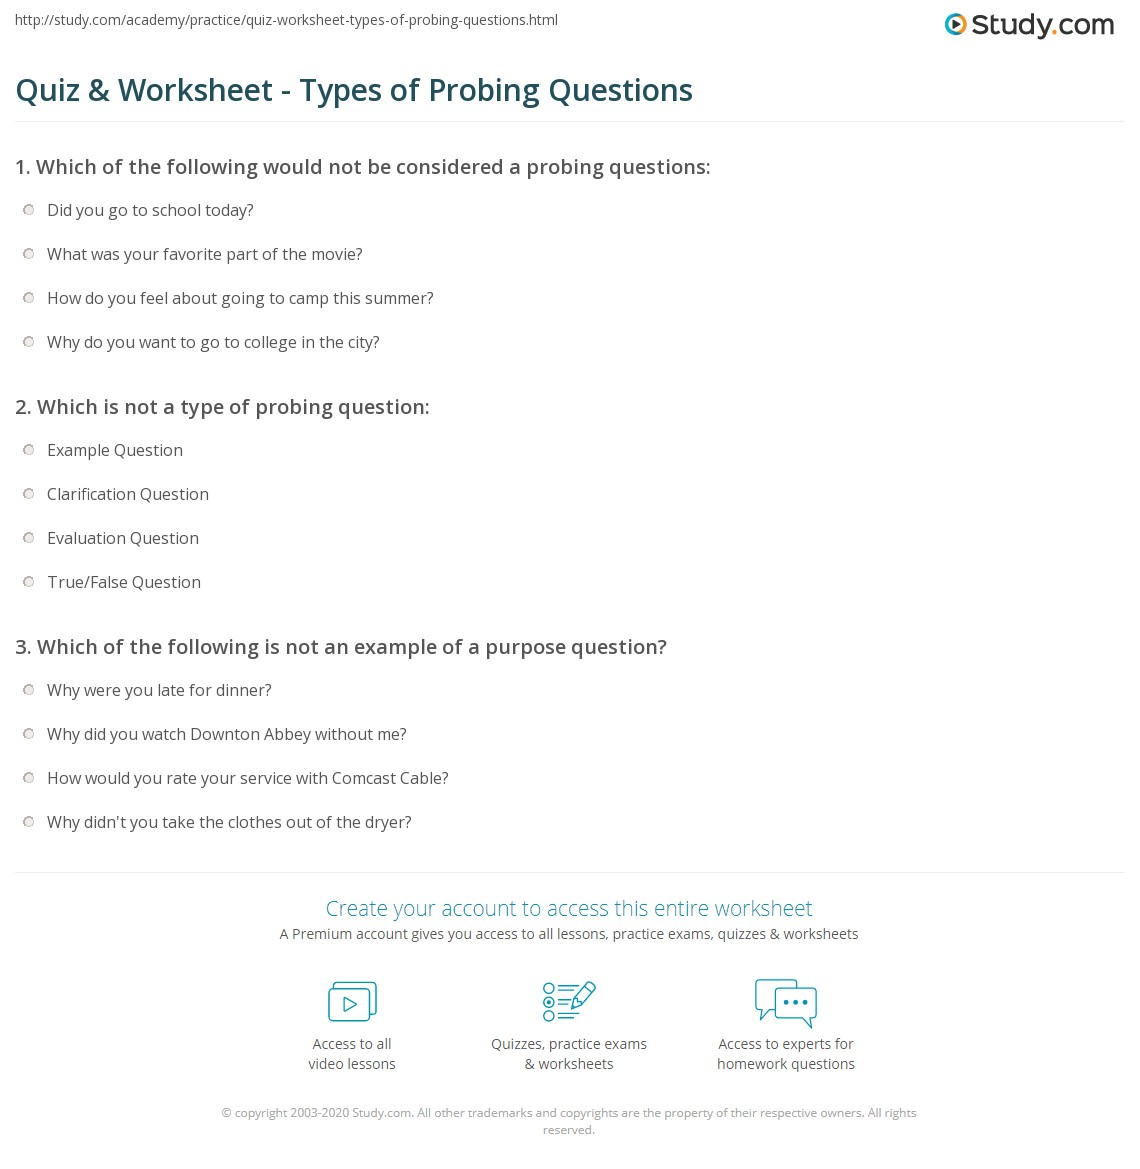 Probing questions for dating